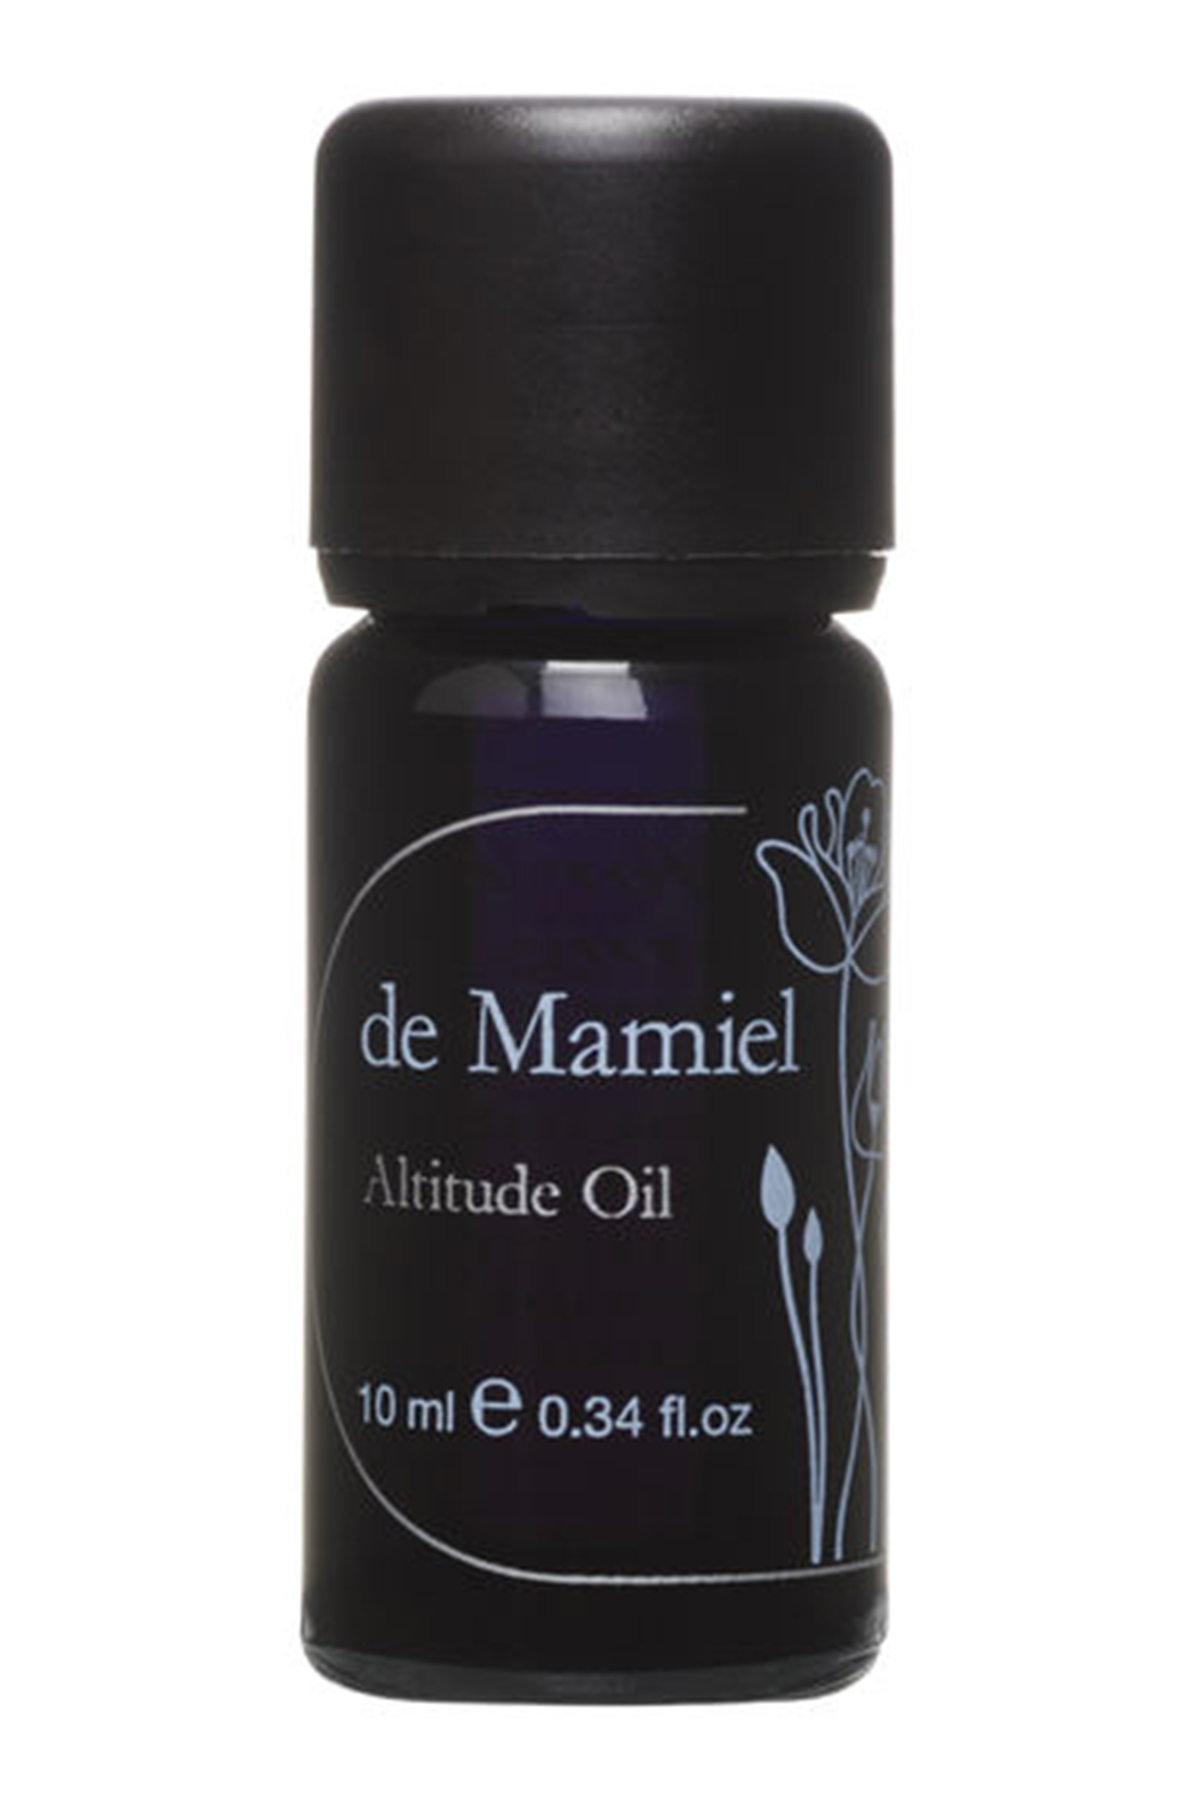 Click to buy de Mamiel altitude oil